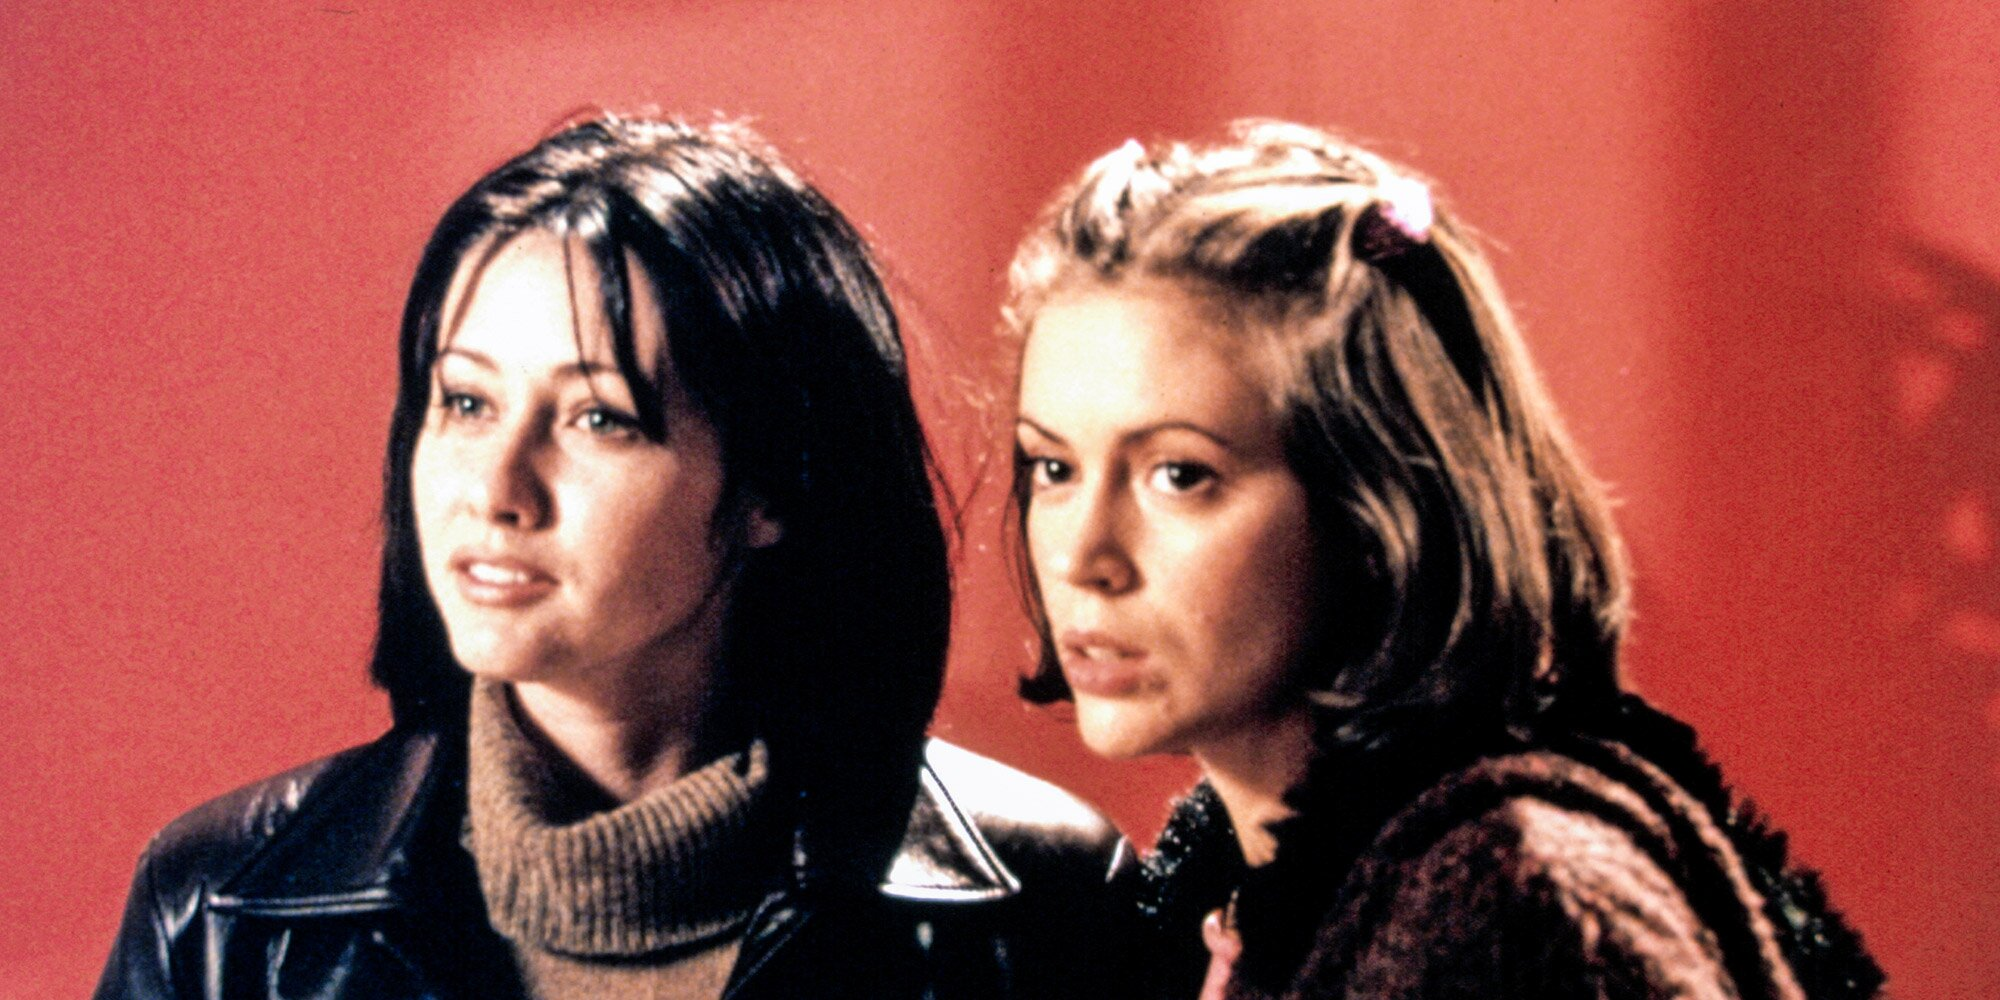 Alyssa Milano feels 'guilt' over 'Charmed' tension with Shannen Doherty